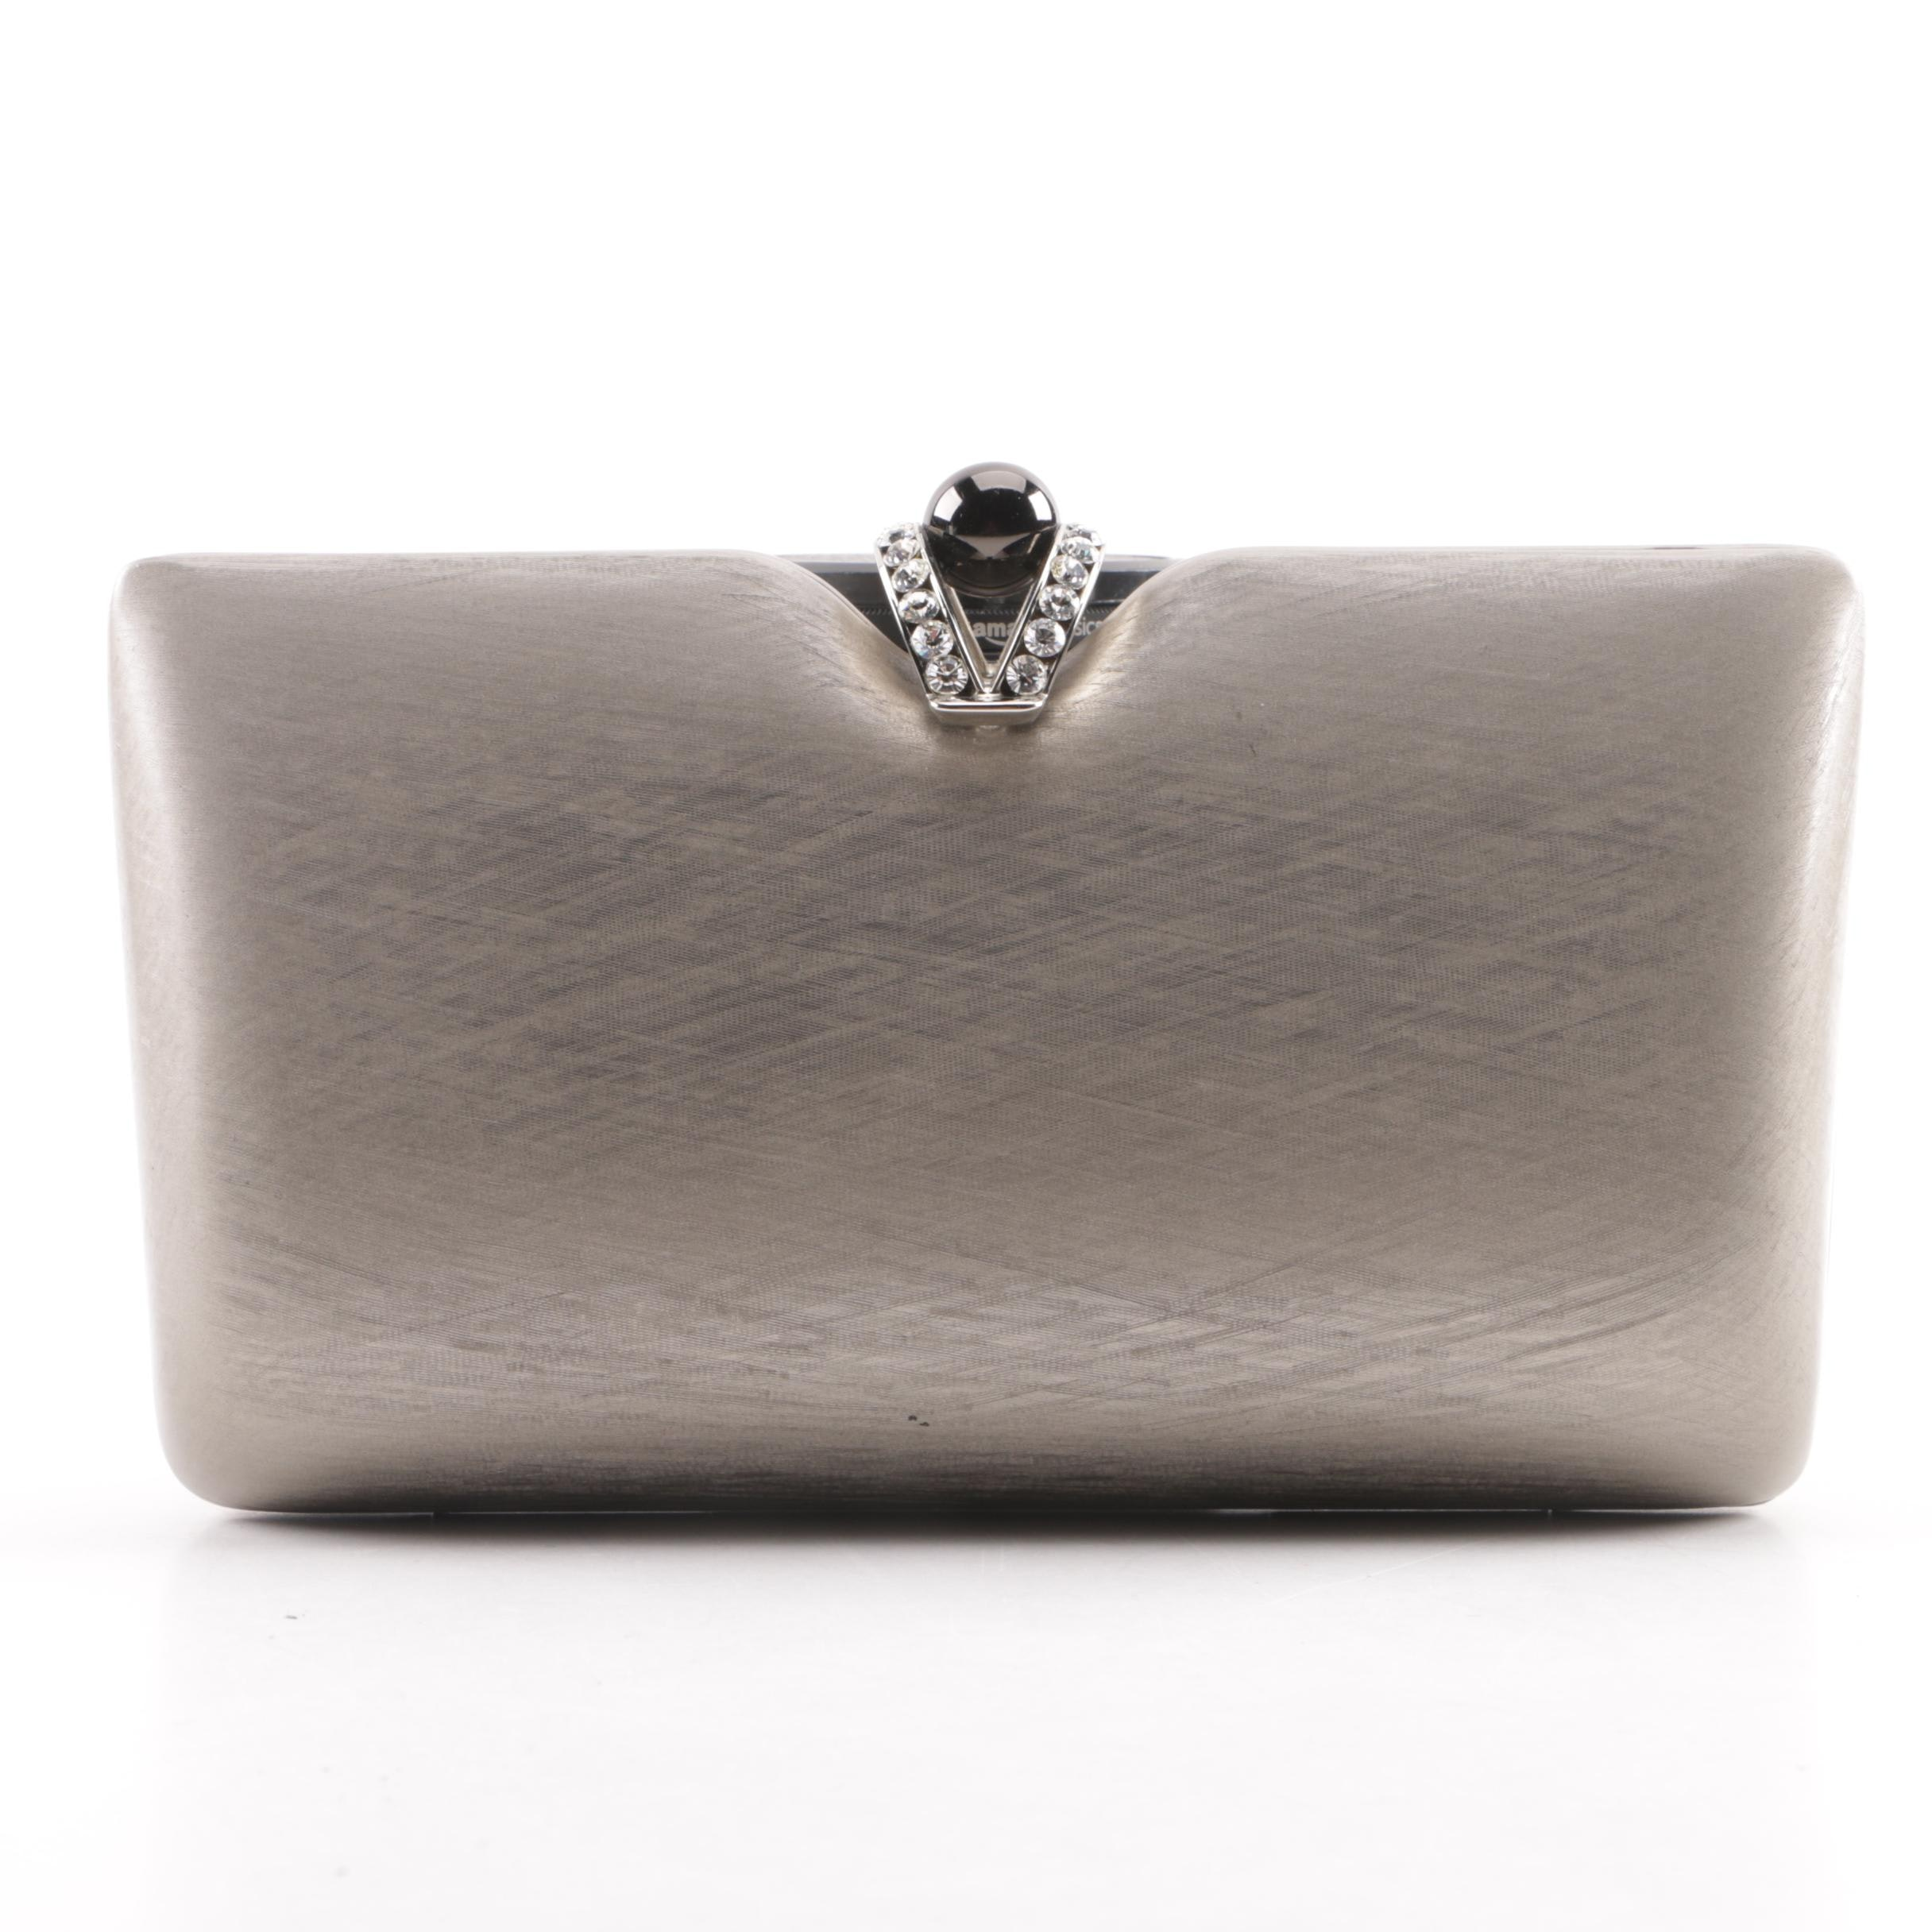 Rodo Metal Convertible Clutch Evening Bag